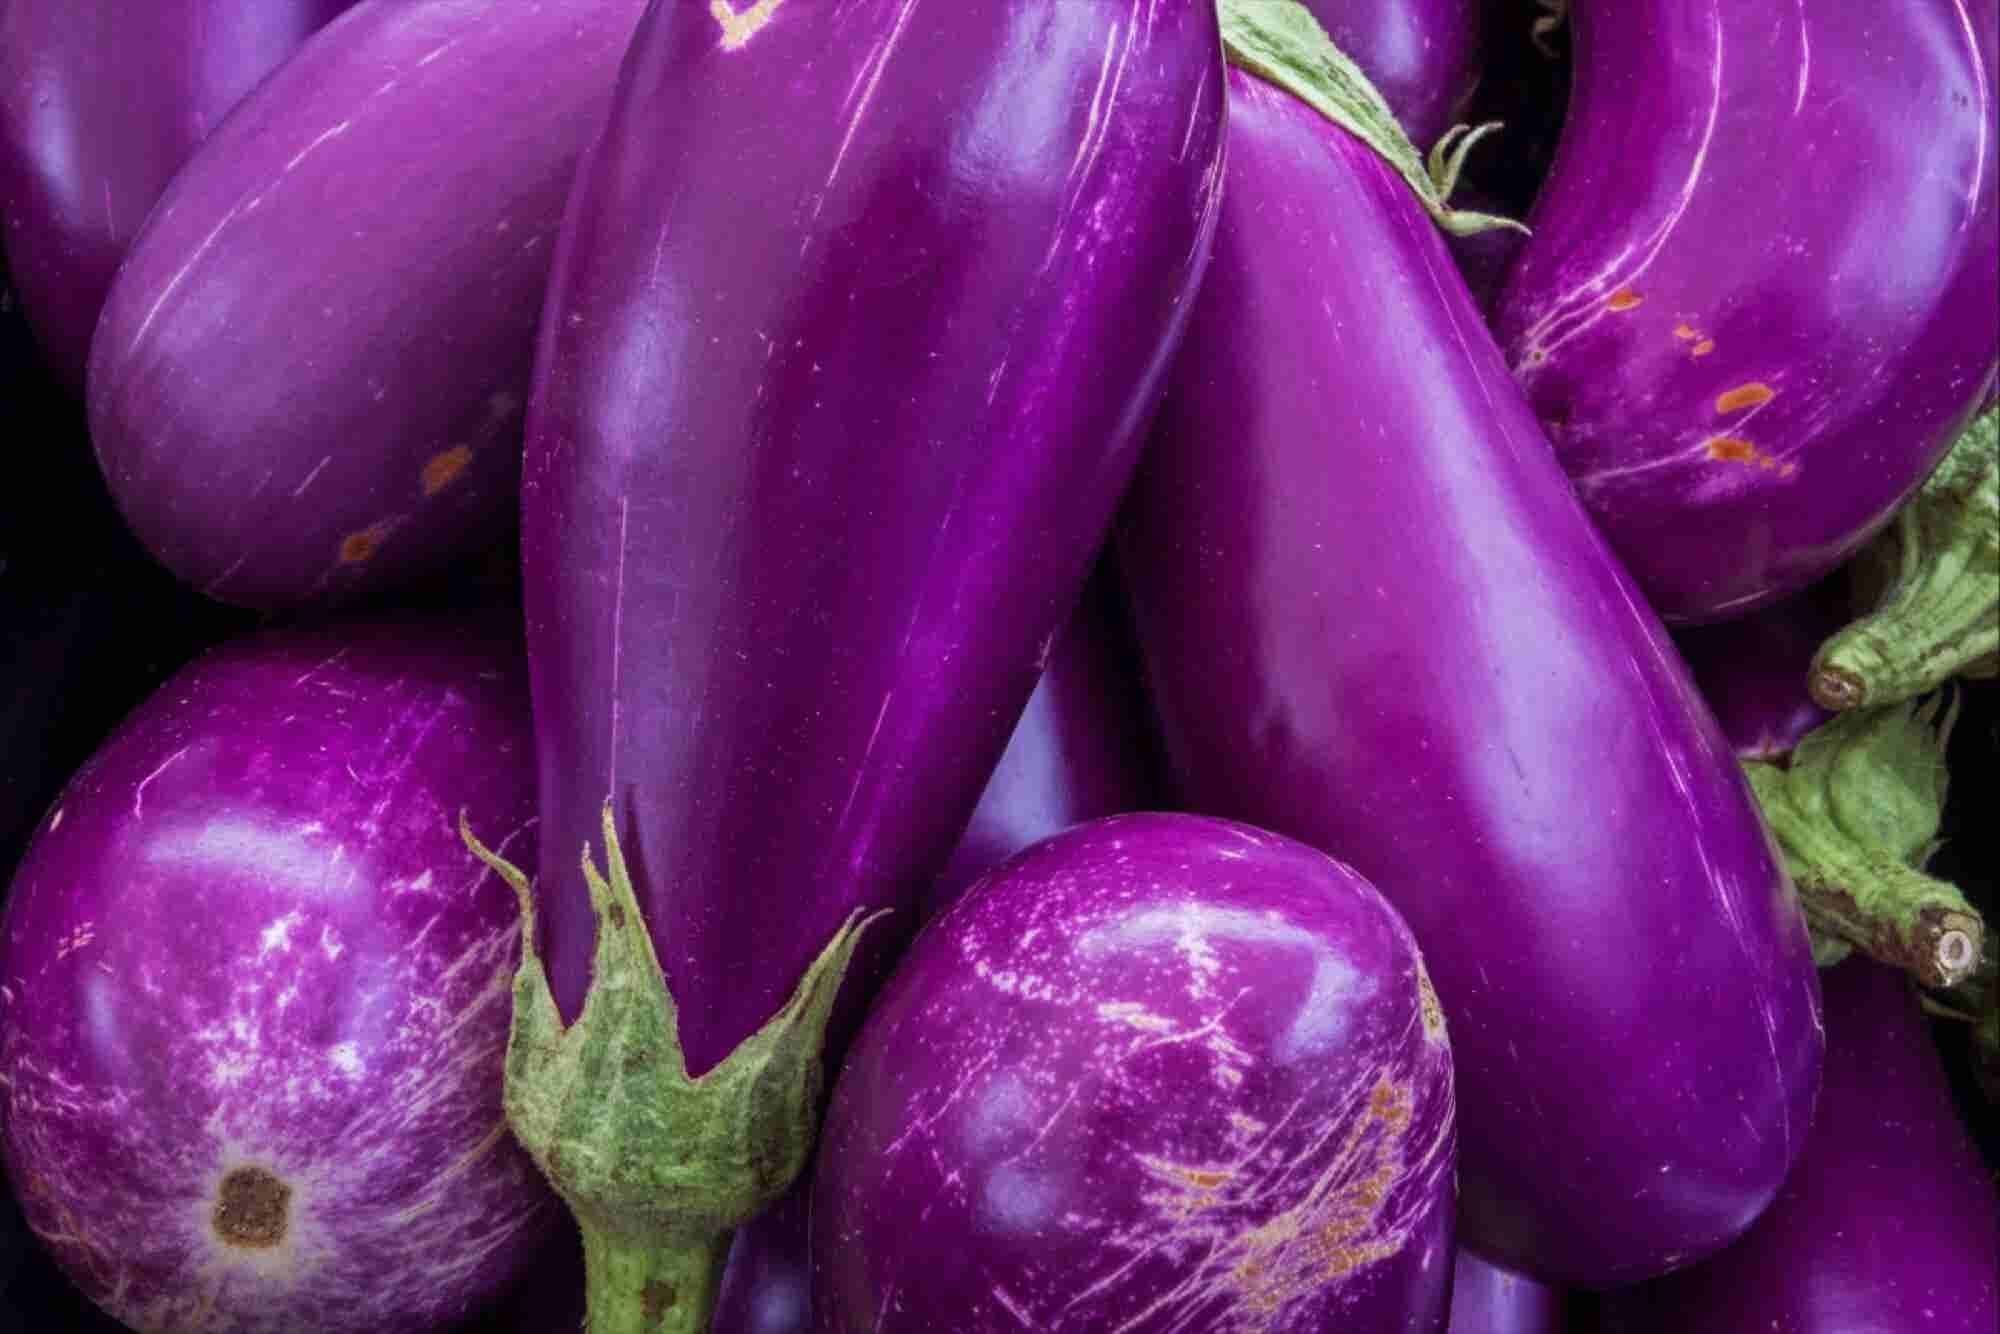 Why Durex Is Promoting an Emoji-Inspired Eggplant-Flavored Condom